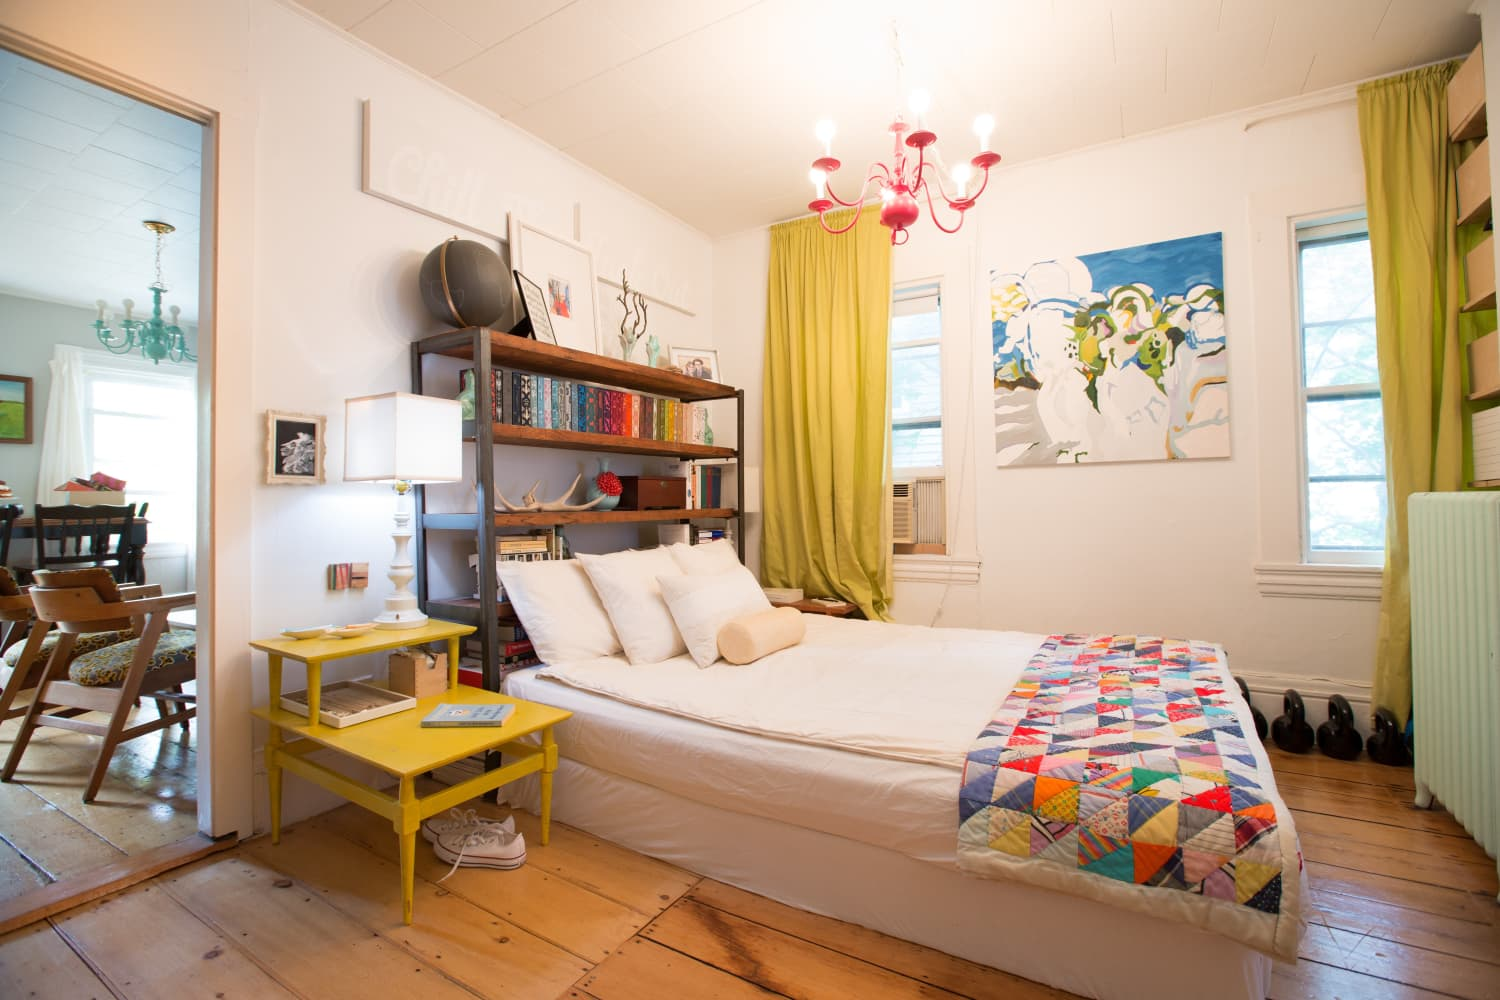 8 Storage Solutions To Maximize Your Hidden Bedroom Space